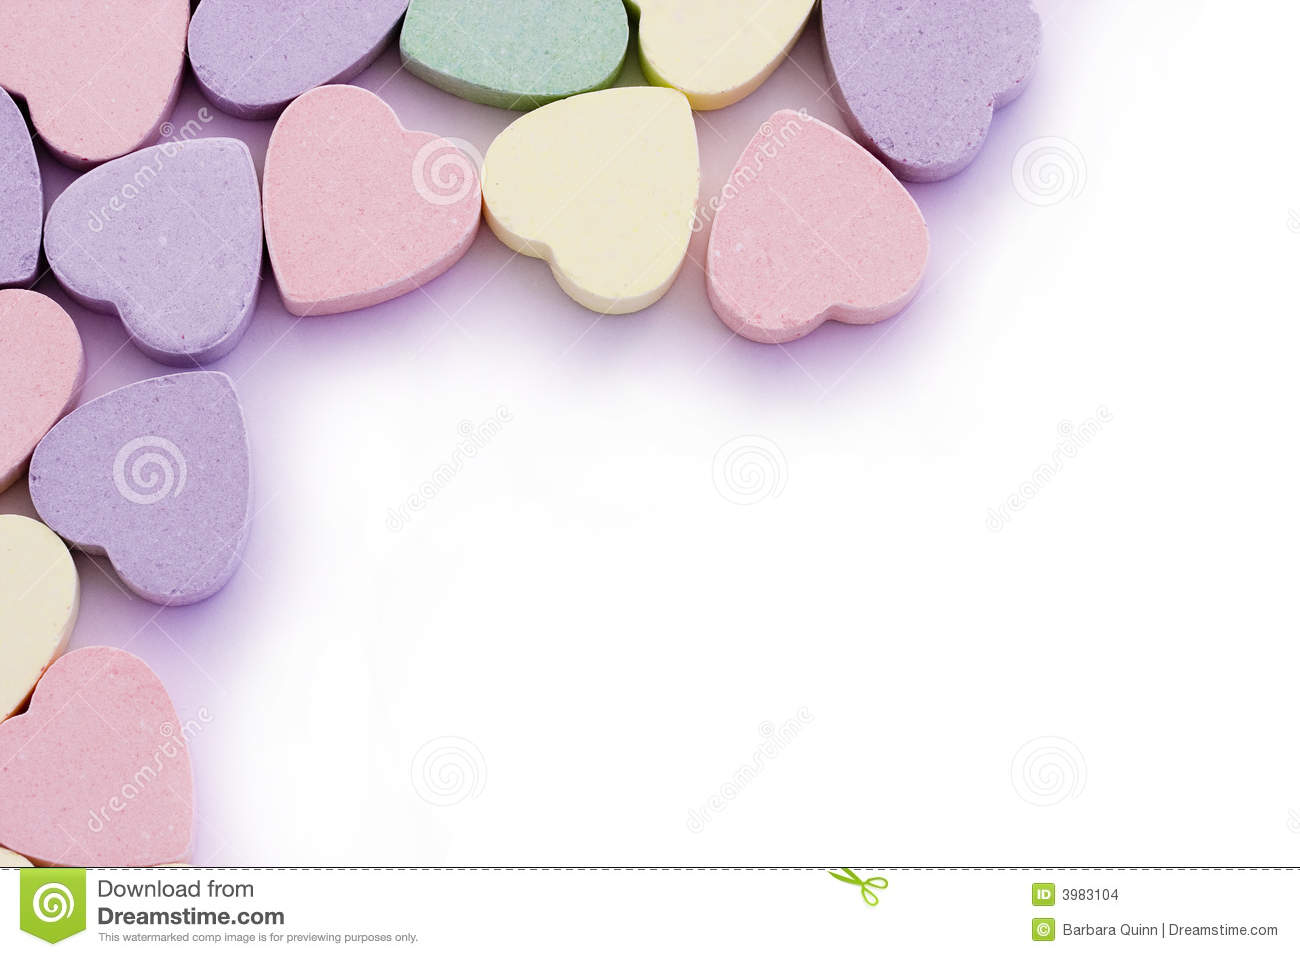 Sweet Hearts Edging Border Stock Photo Image Of Sweets